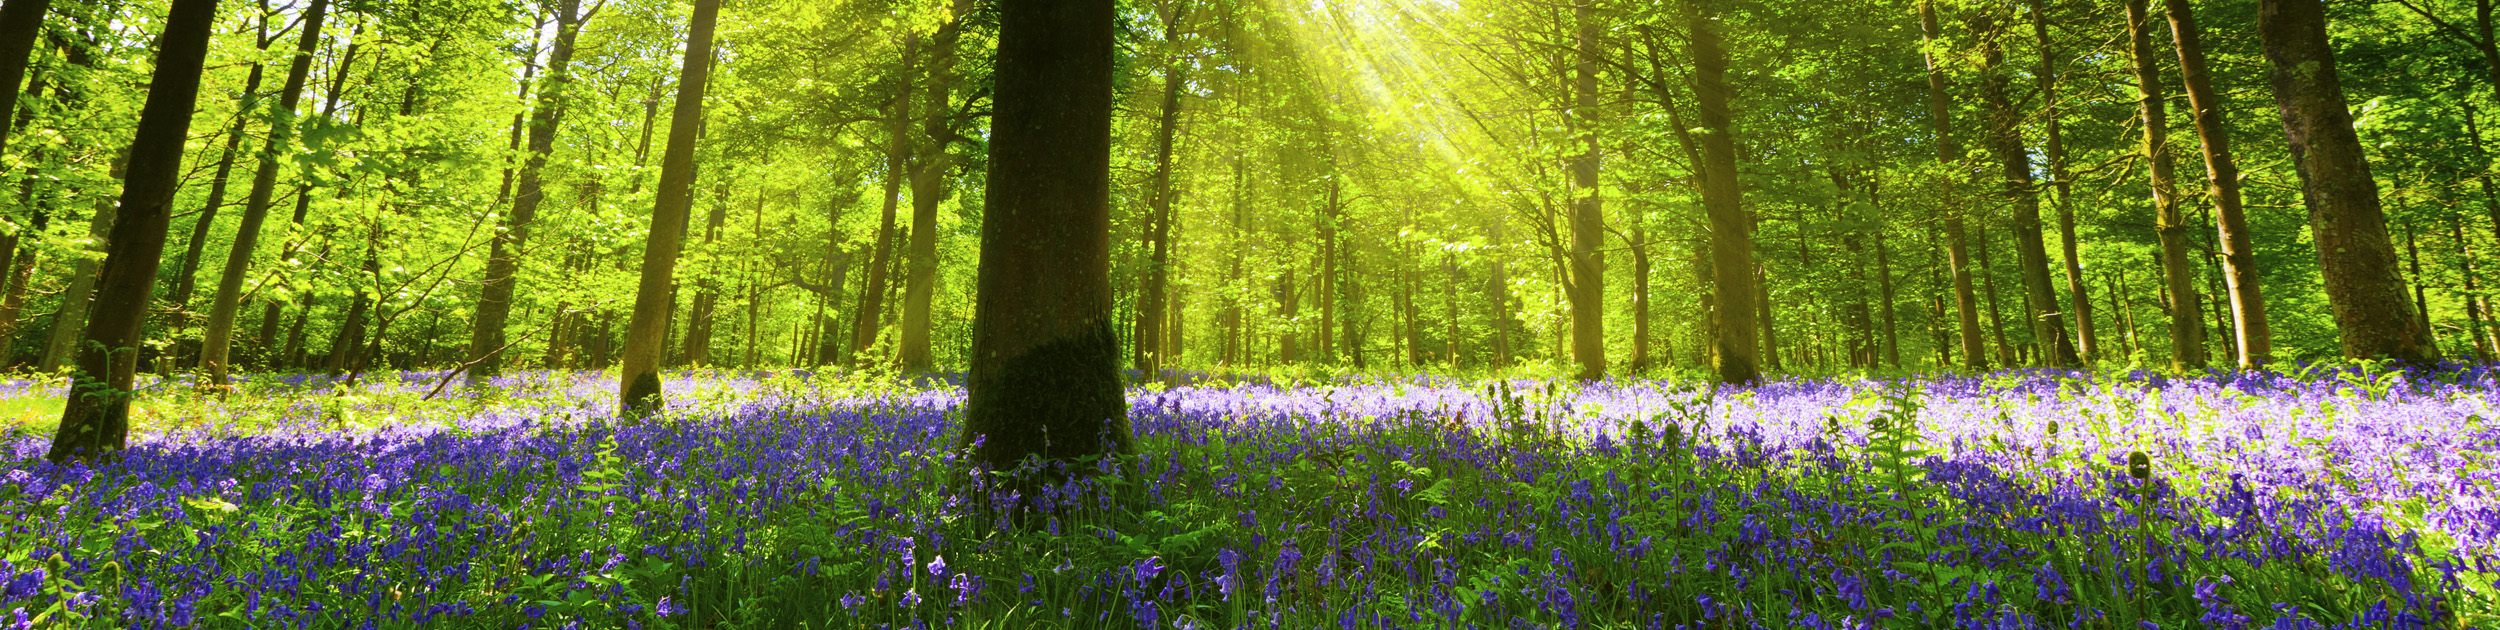 sprawling purple flowers in the woods surrounded by trees with sunshine showing through